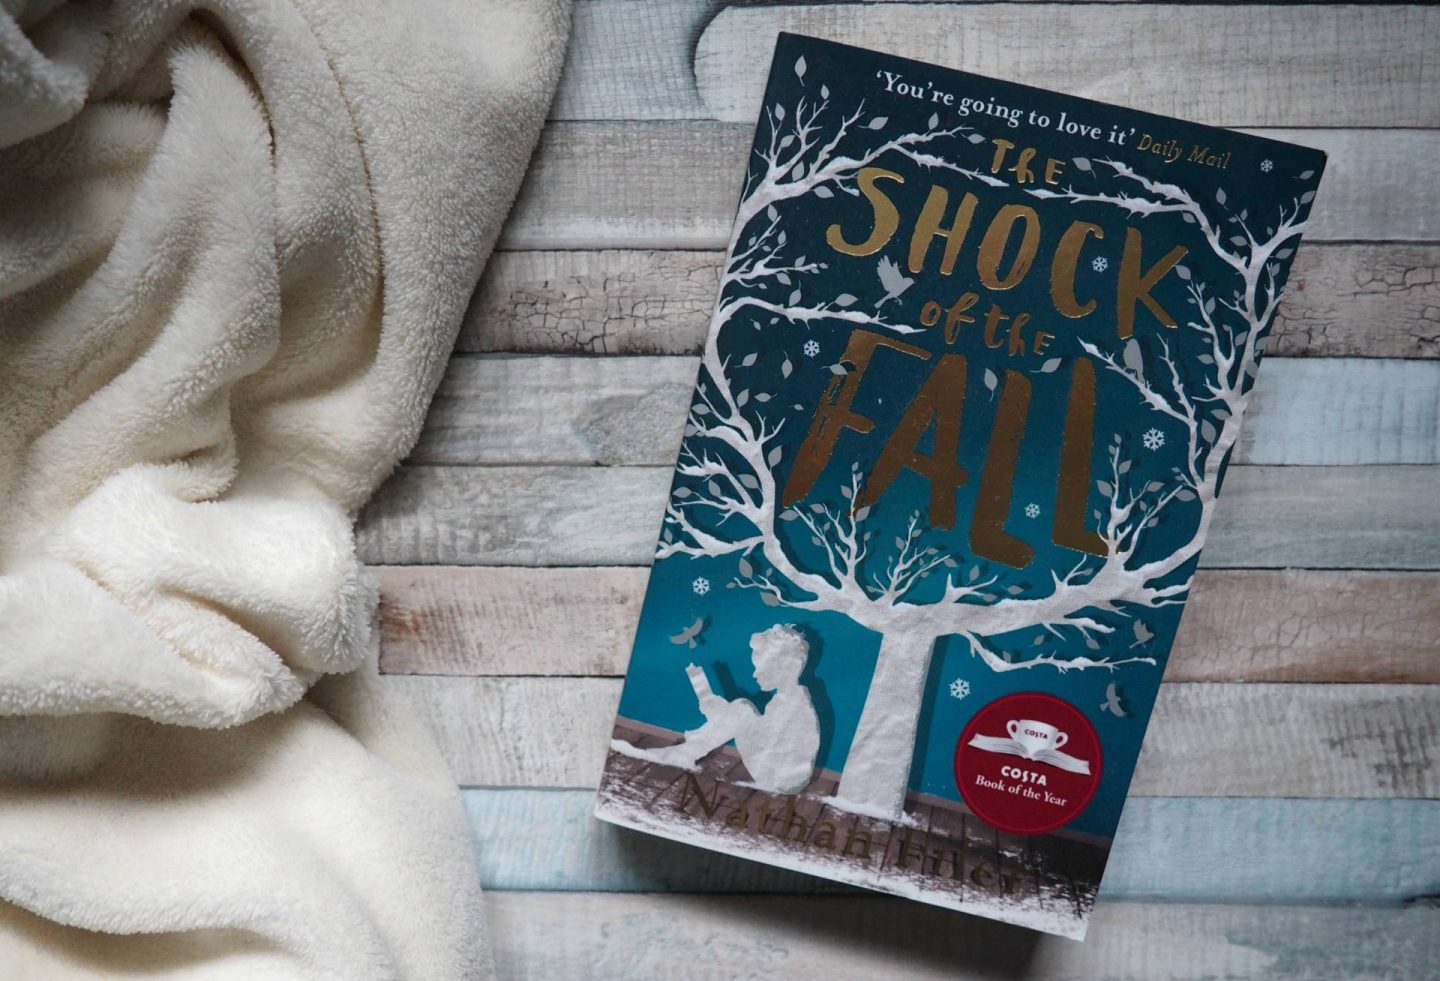 Book Review: The Shock of the Fall by Nathan Filer